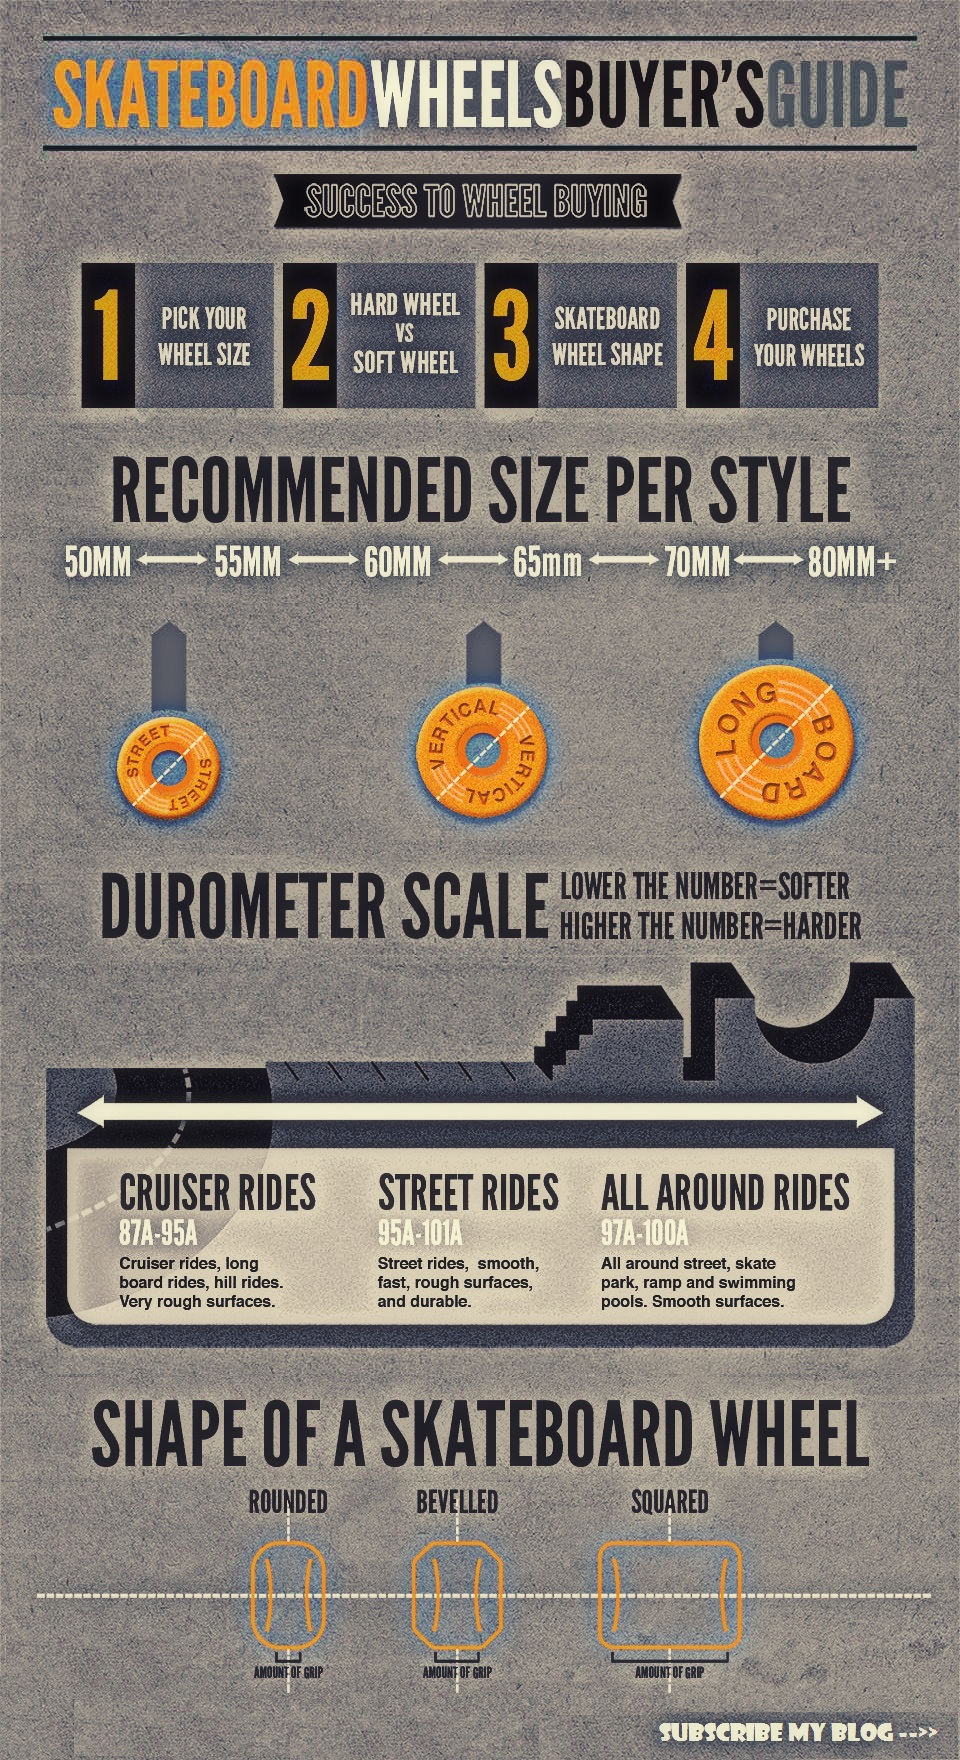 Skateboarder's Wheel Guide